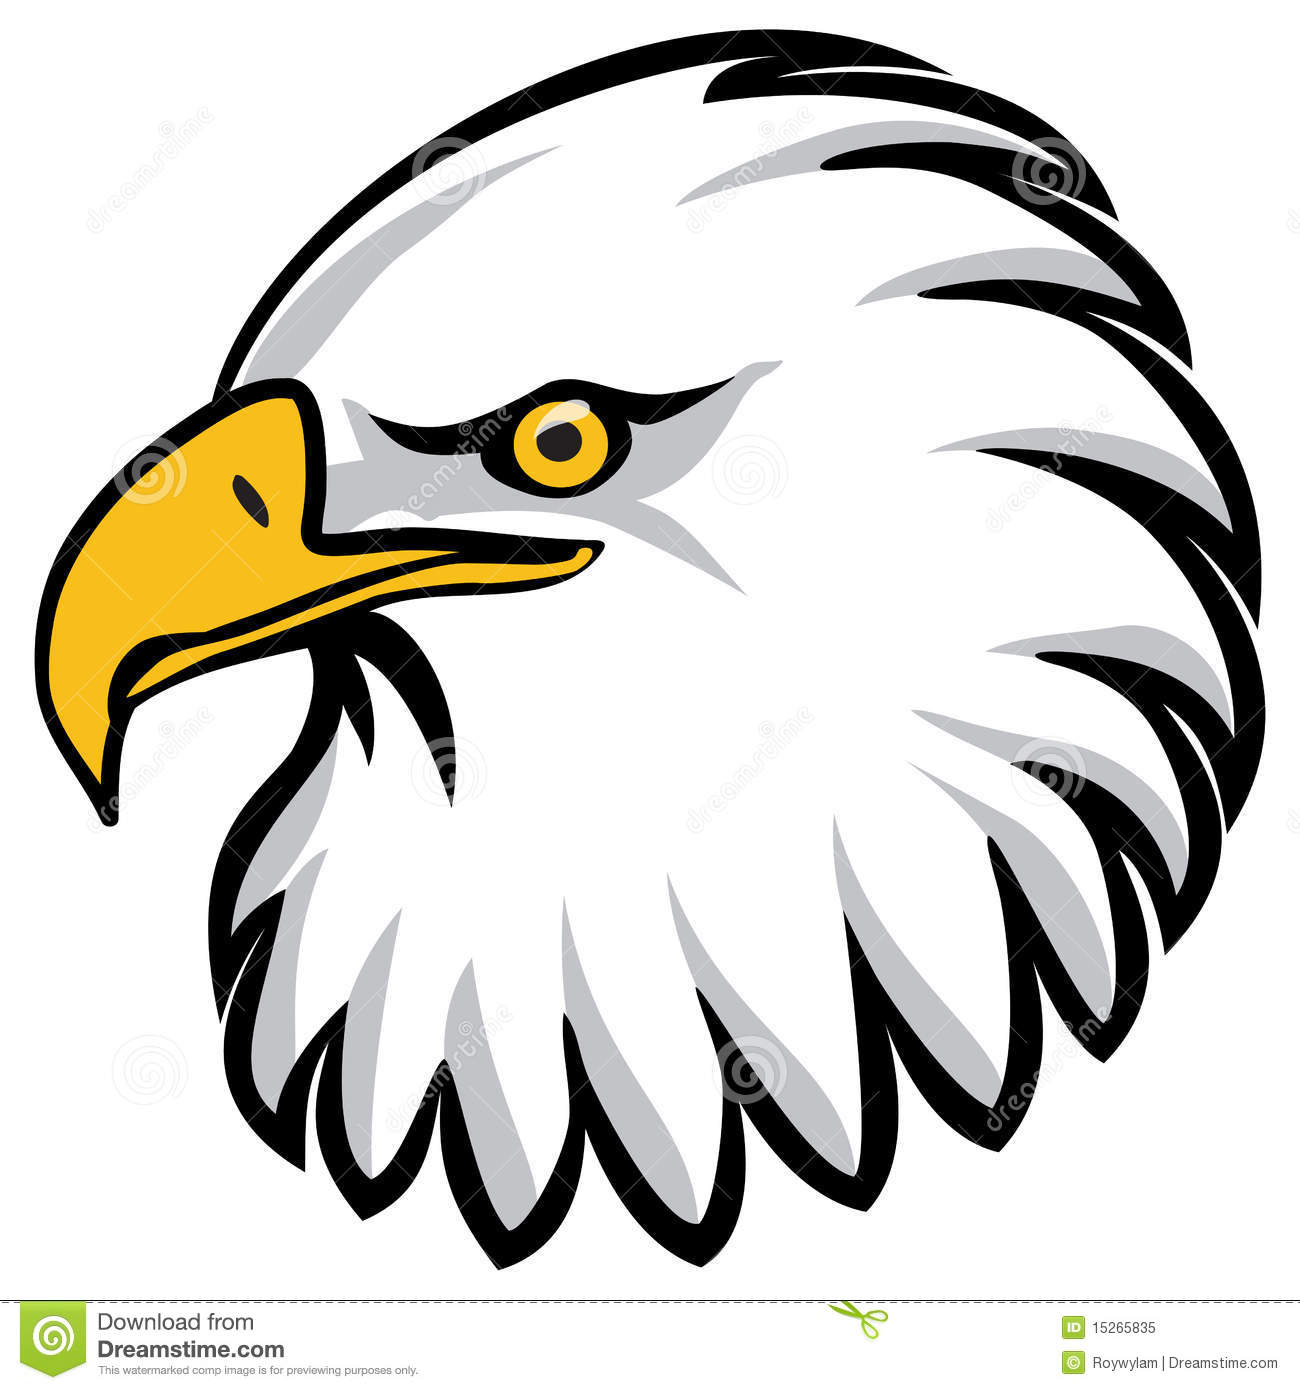 Eagle Head Clip Art Free Eagle's head drawn in a